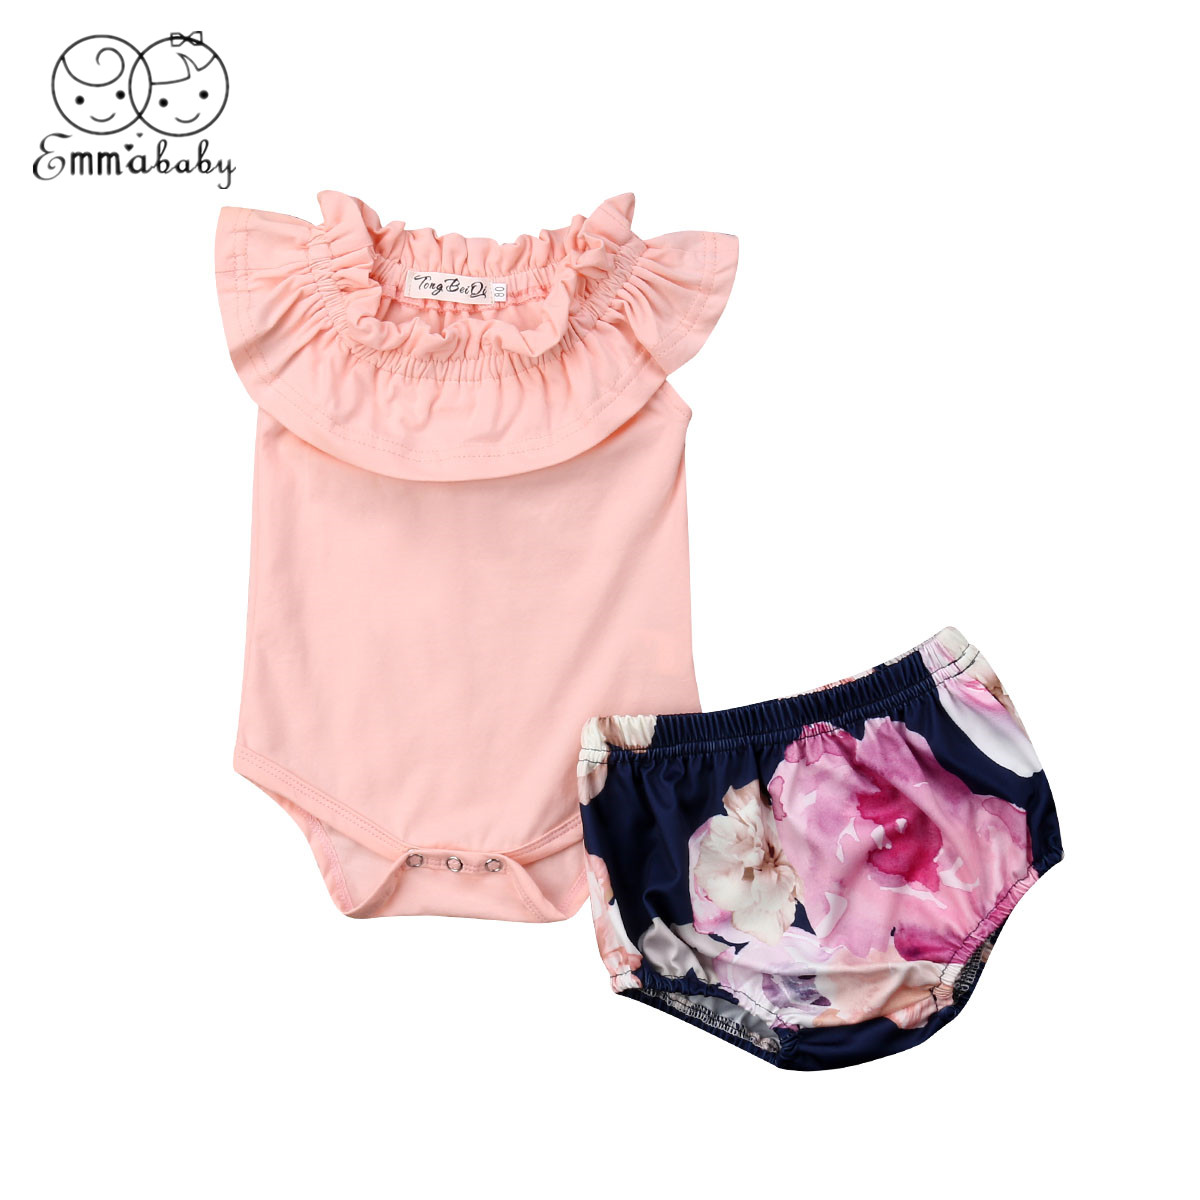 2019 Brand New Baby Girls Newborn Clothes Cotton Romper Bodysuit Jumpsuit Shorts Summer Outfits